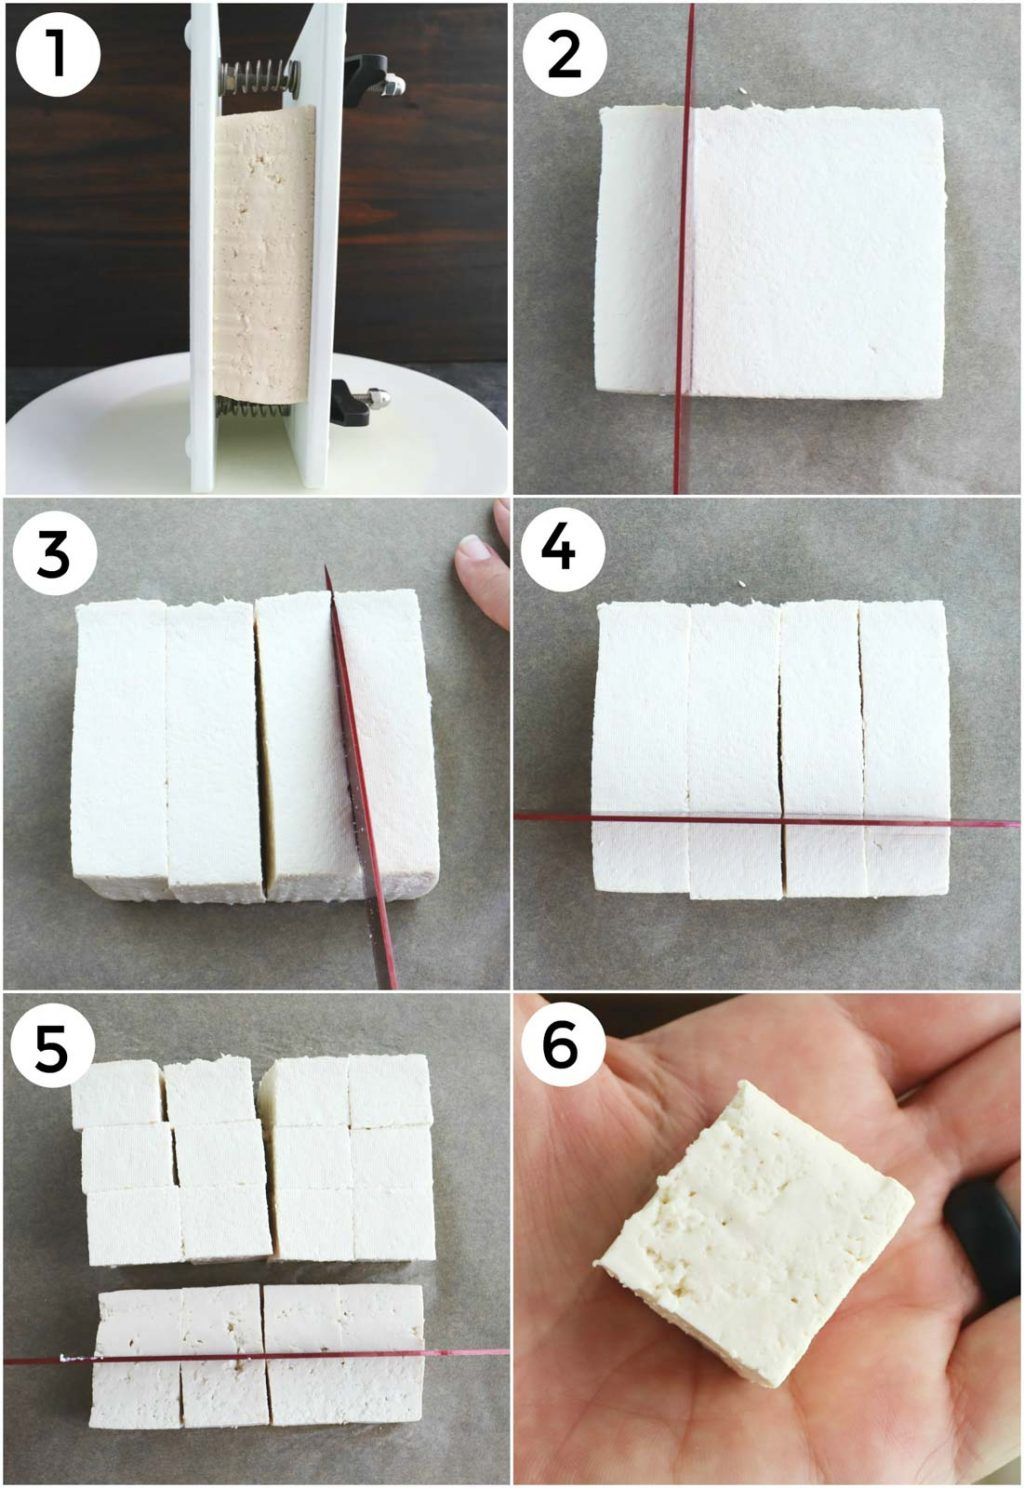 A photo collage showing how to make baked tofu in just a few easy steps.